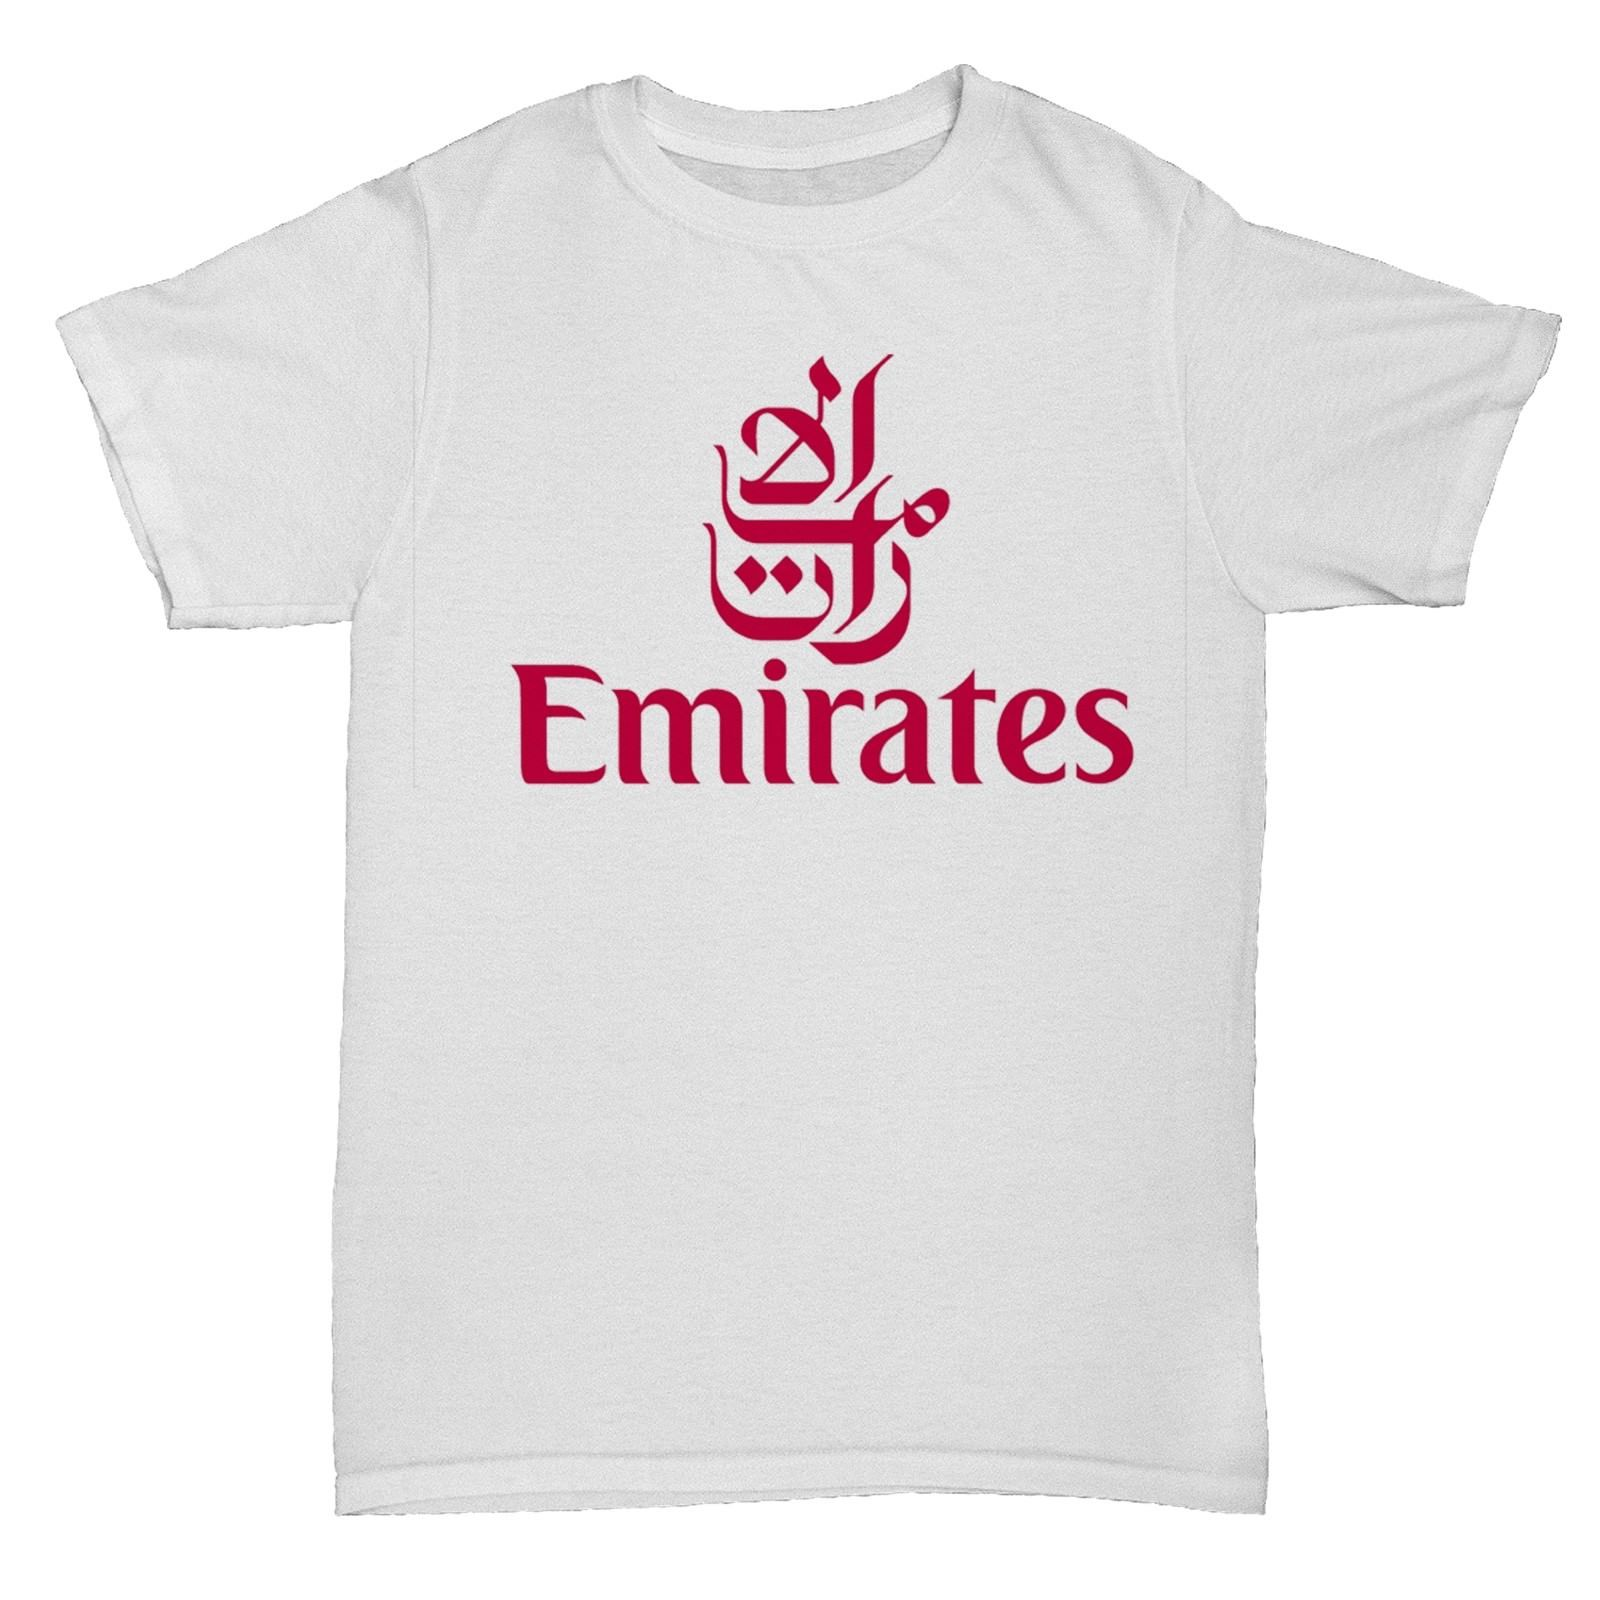 EMIRATES UAE AIRWAYS BA AIRLINES RETRO AEROPLANE BOAC PAN AM T SHIRT Print T-Shirt Men Summer Style Round Neck Clothes